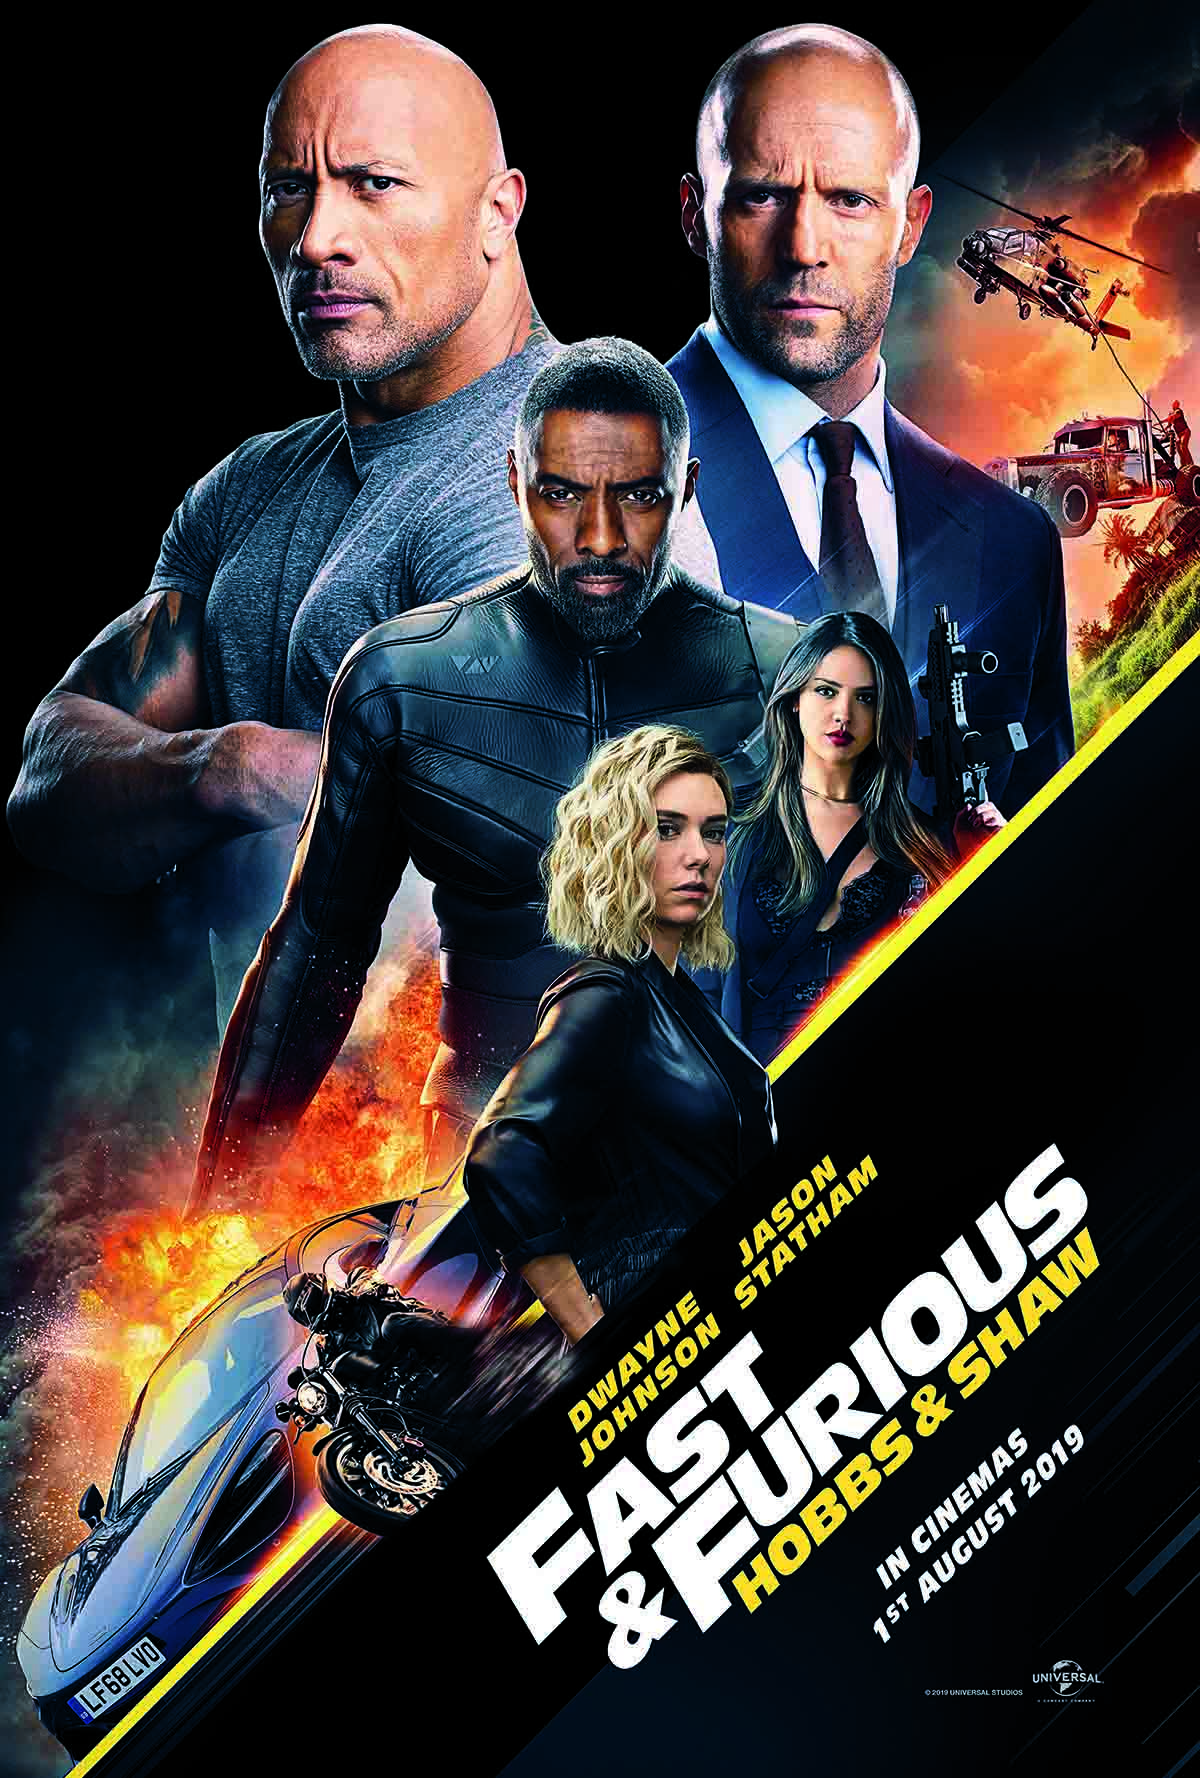 Fast And Furious Hobbs And Shaw Movie Outfits Costumes Review Shopswell Fast And Furious Hobbs Free Movies Online